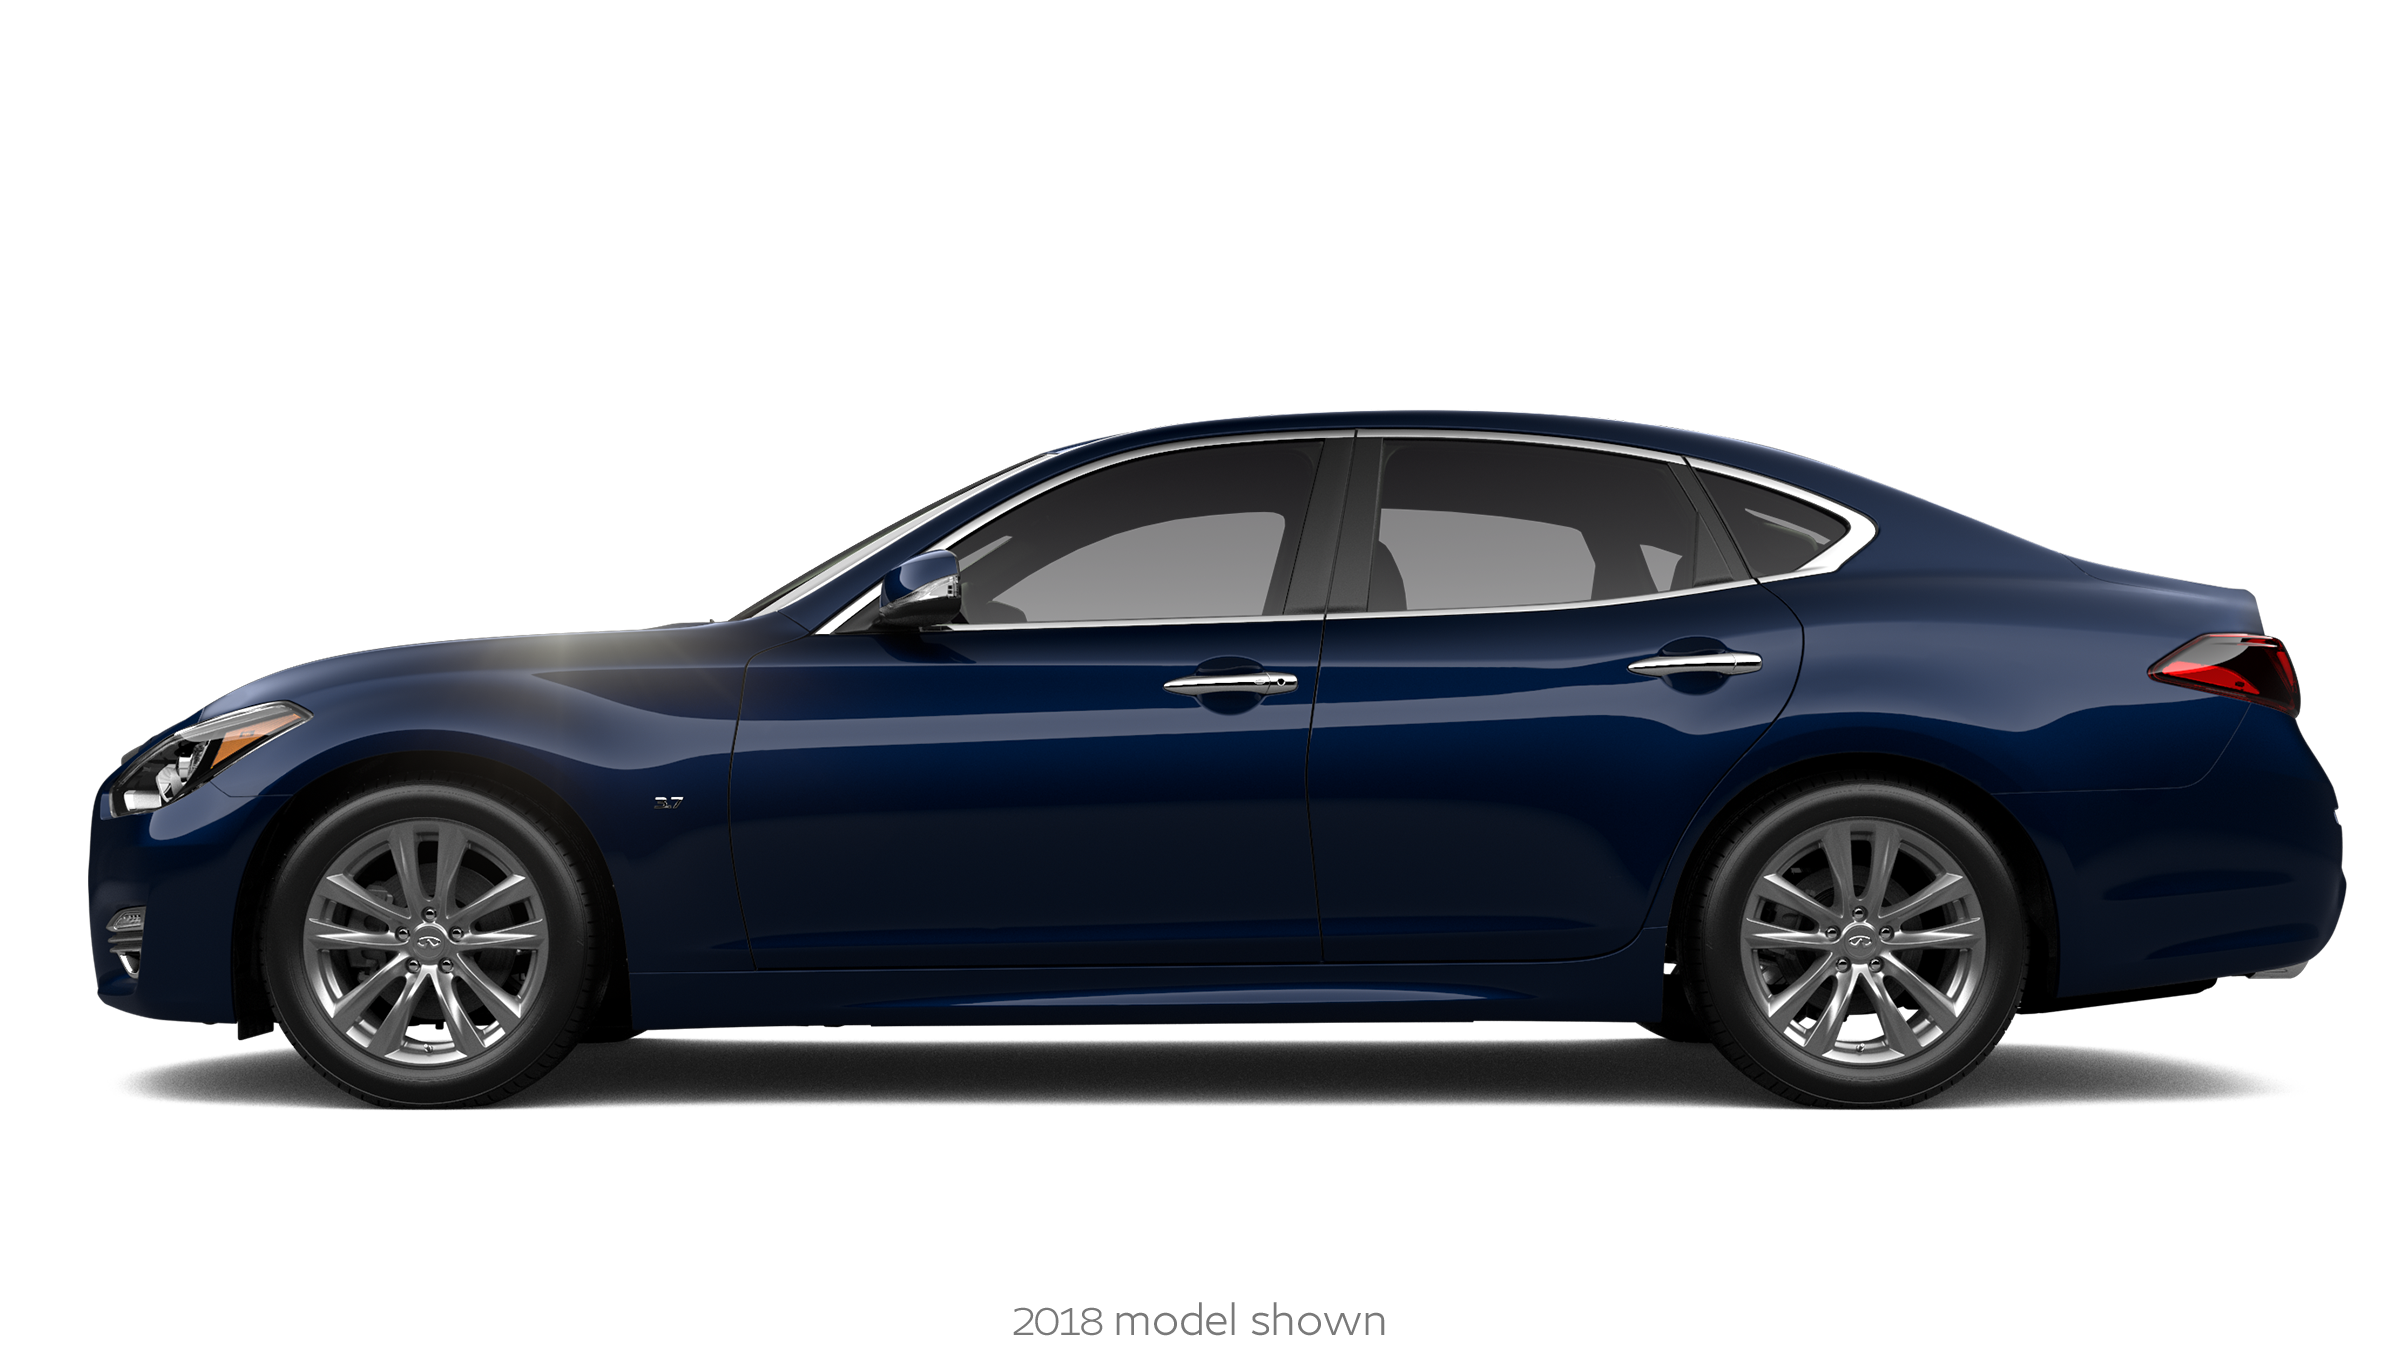 2019 INFINITI Q70 Vehicle Photo in Willow Grove, PA 19090